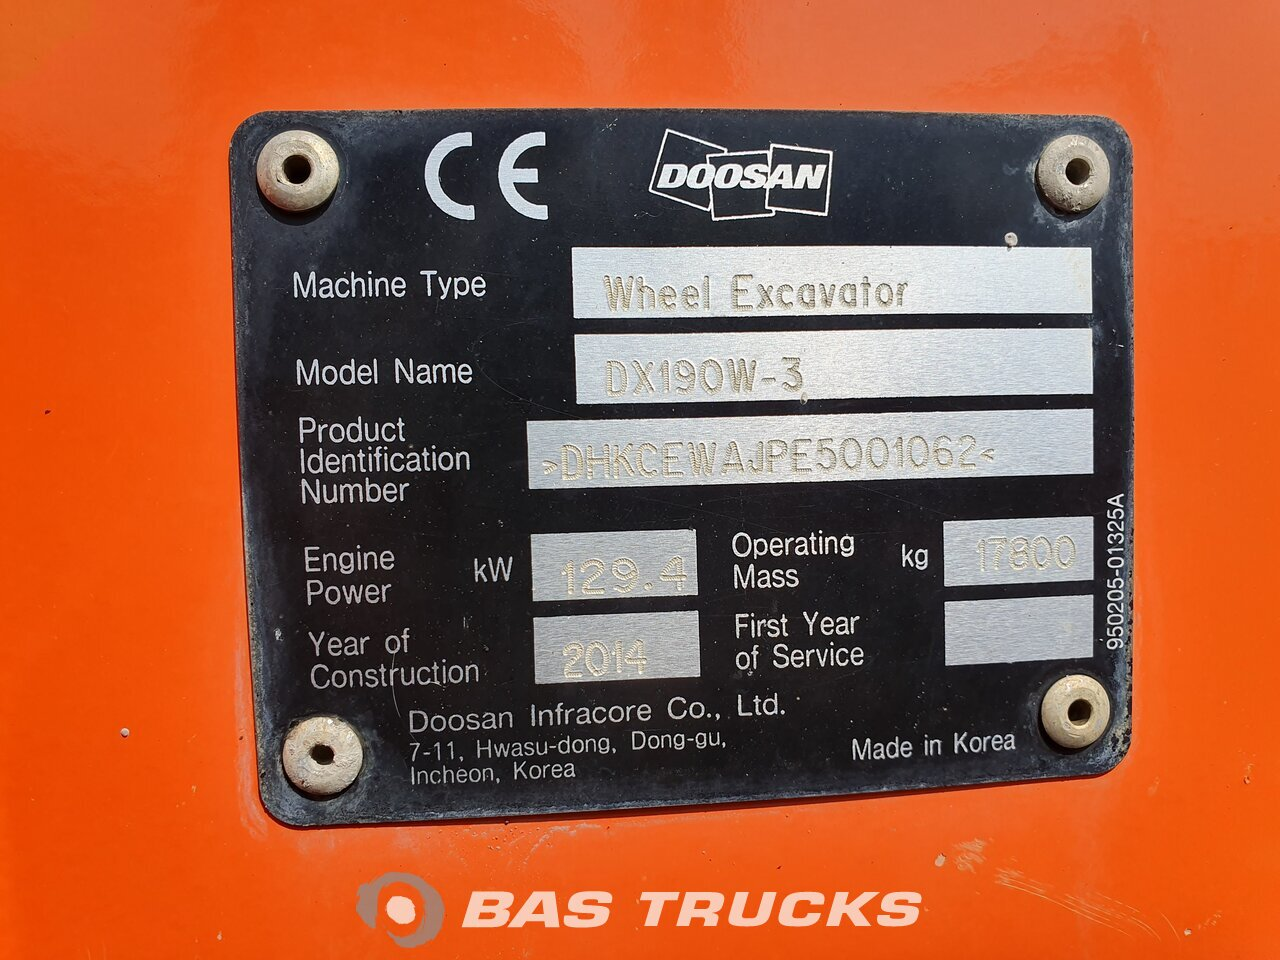 For sale at BAS Machinery: Doosan DX190 W-3 4X4 01/2014